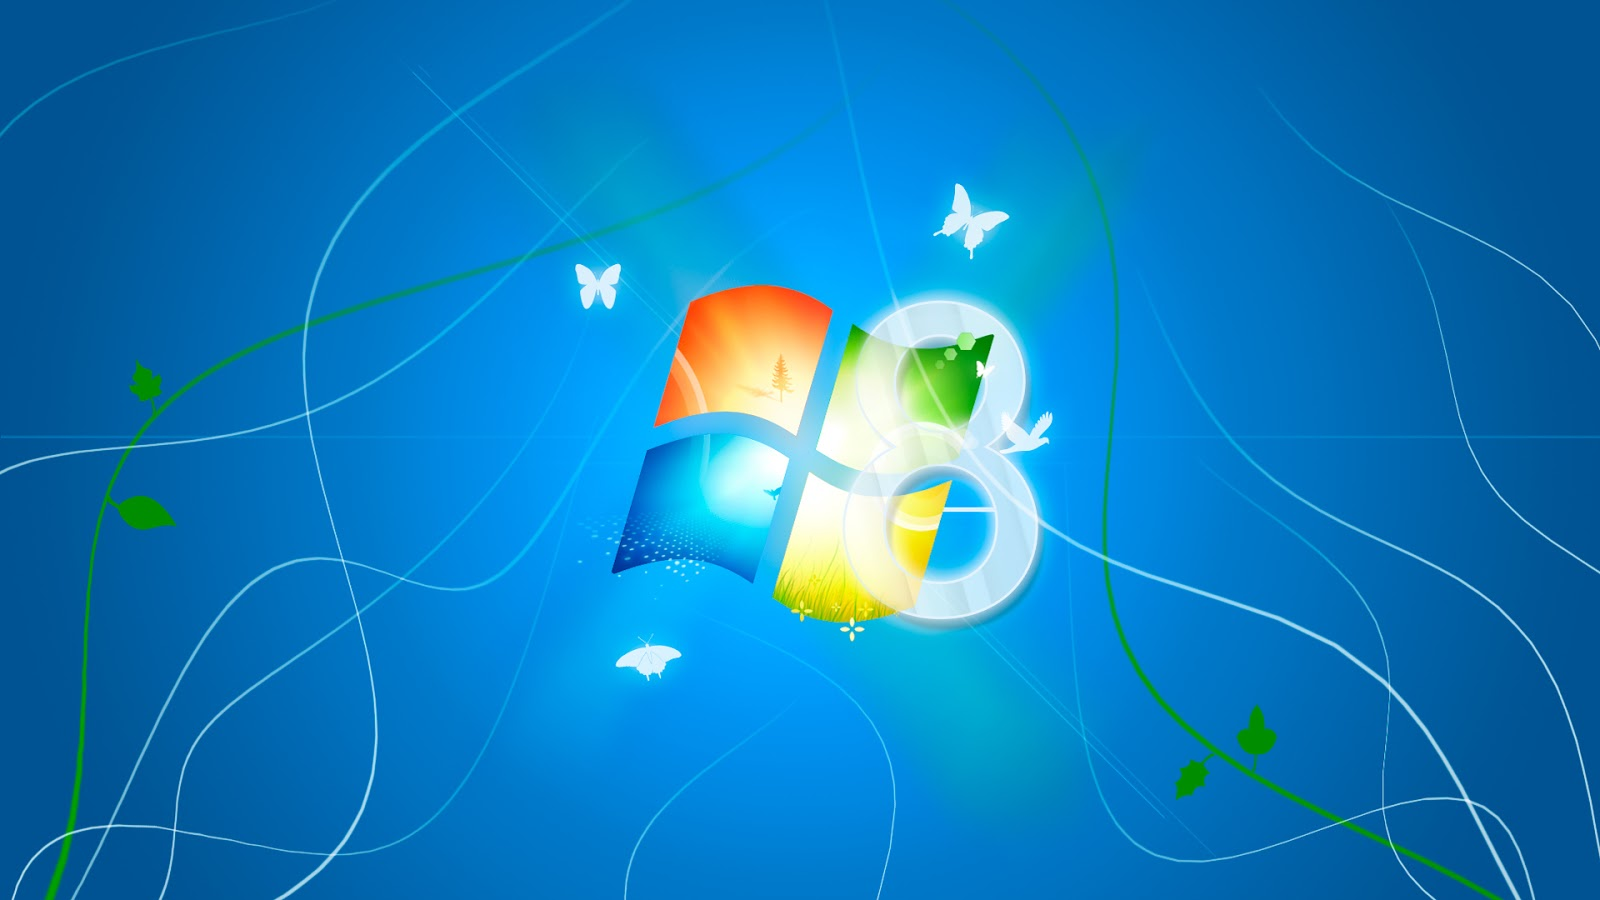 new windows 8 hd wallpapers - photo #31